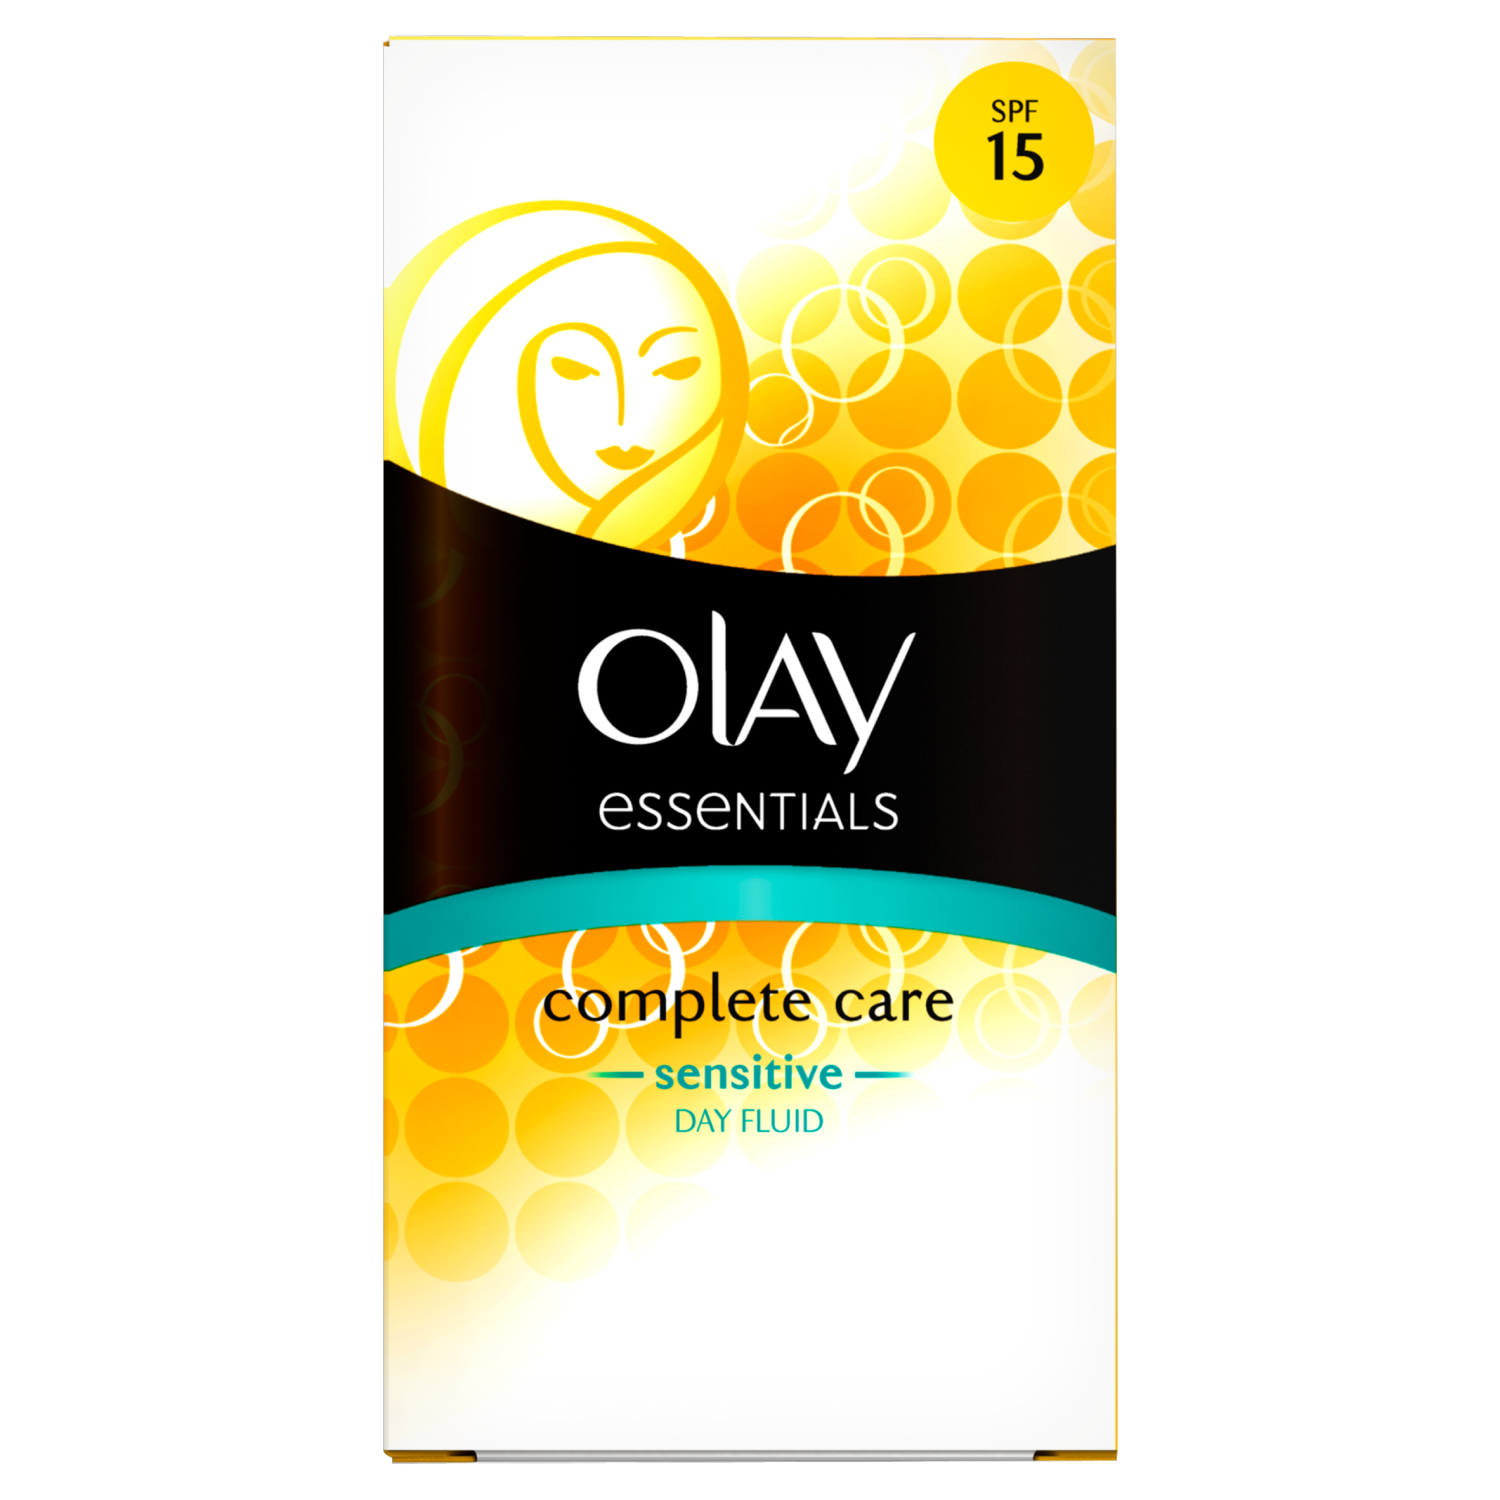 Olay Essentials Complete Lotion Care for Sensitive Skin